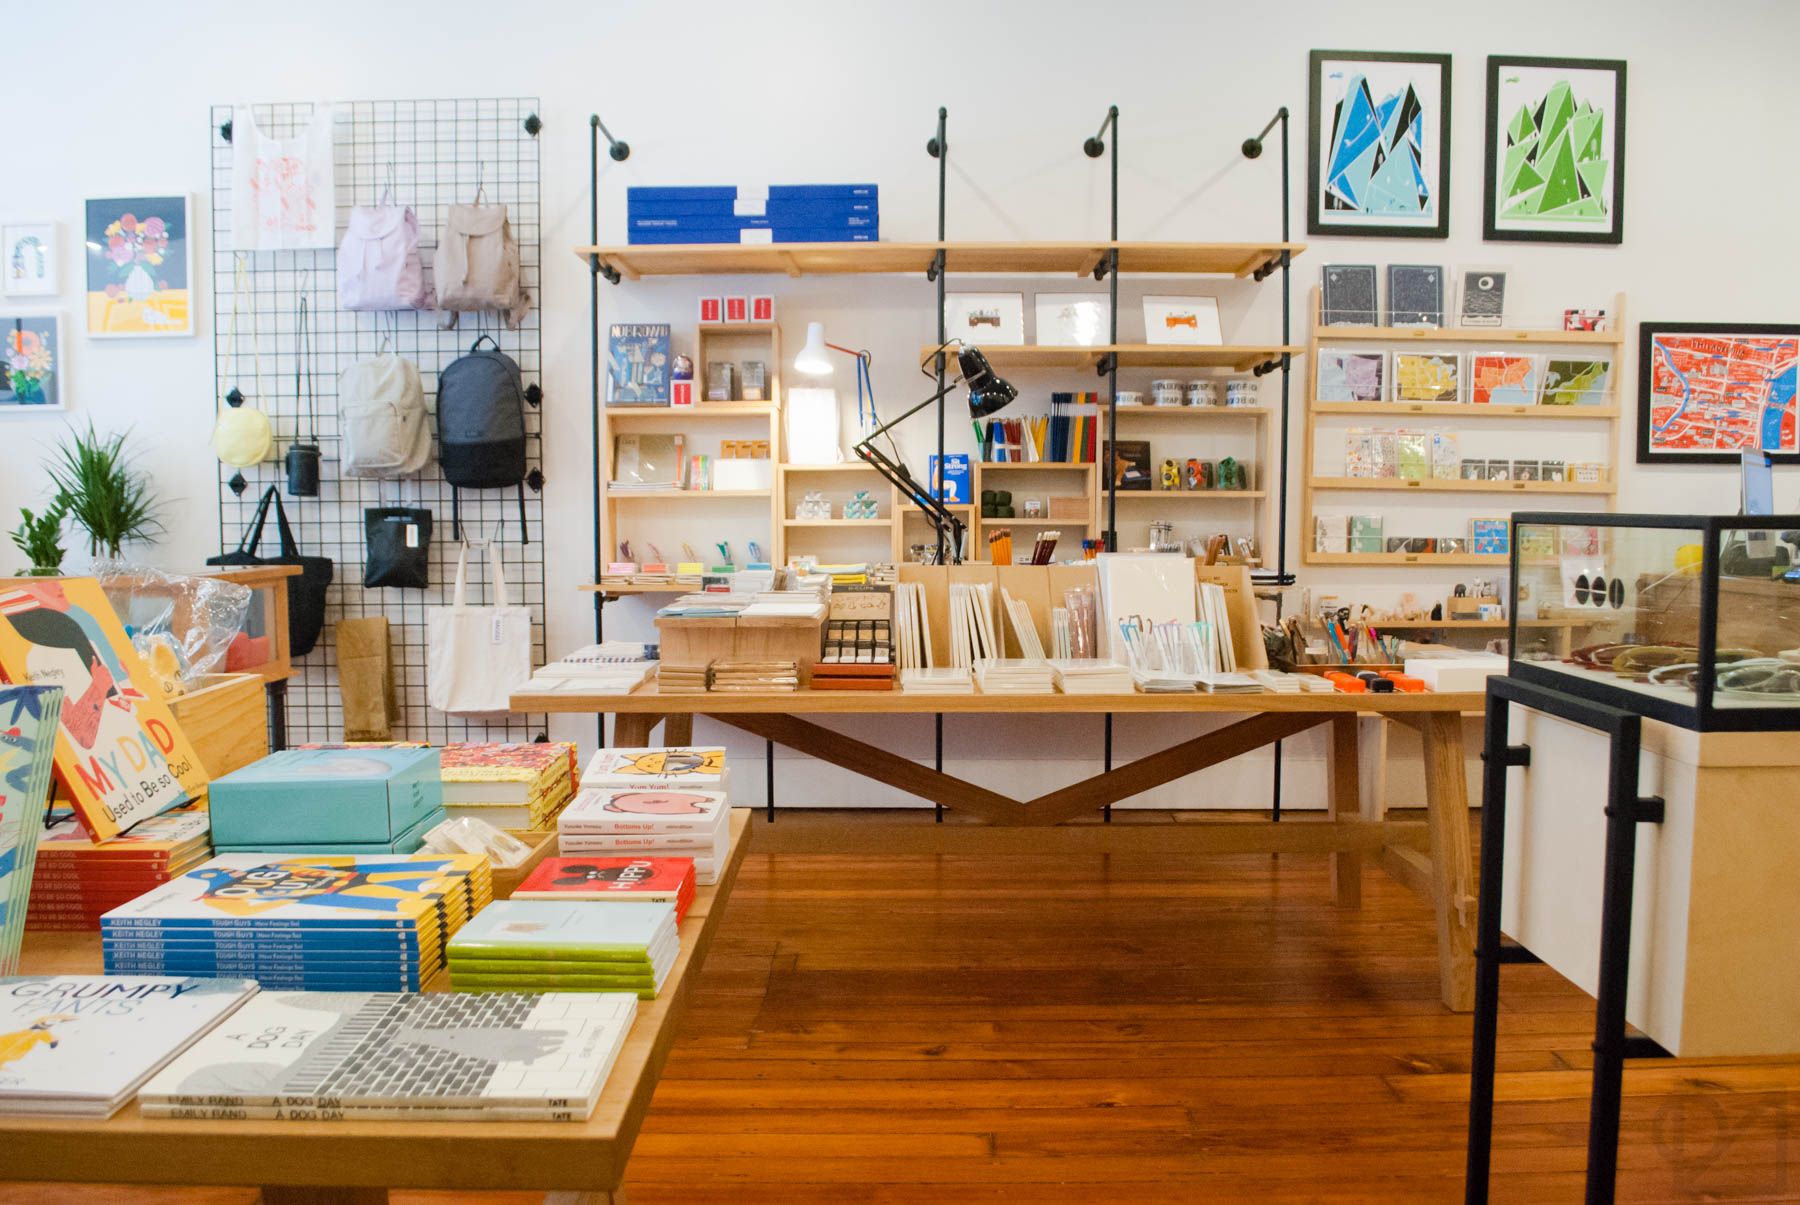 We've focused our stationery alongside an entire half of the shop now